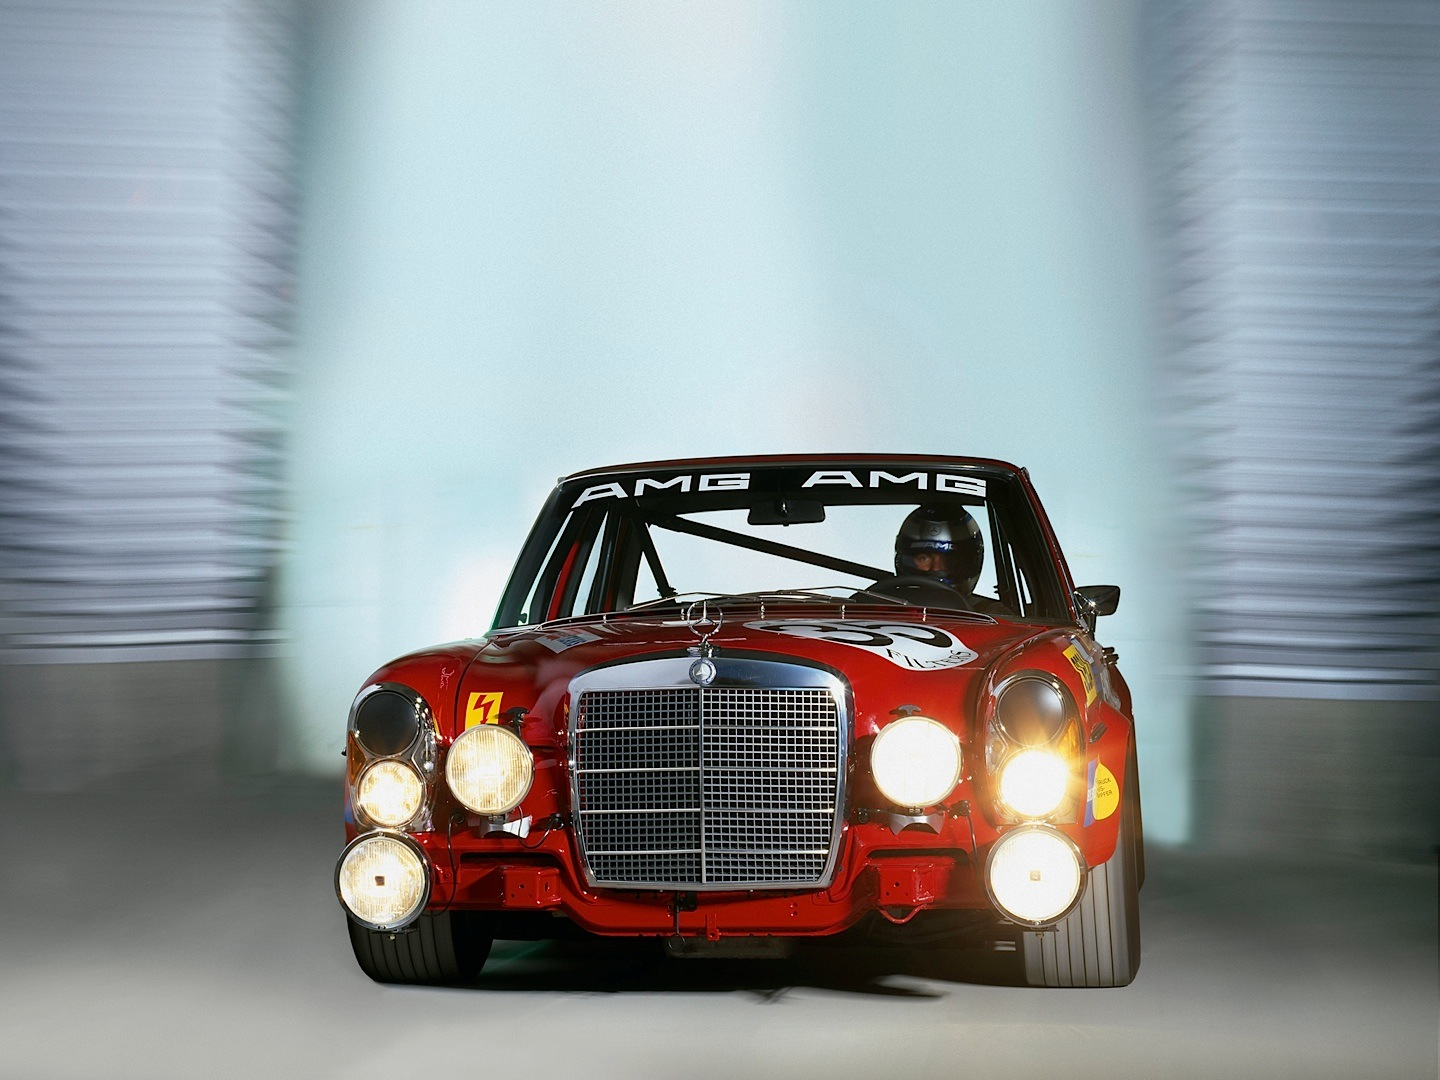 Mercedes Benz Ssk And Amg 300 Sel In The Spotlight Once